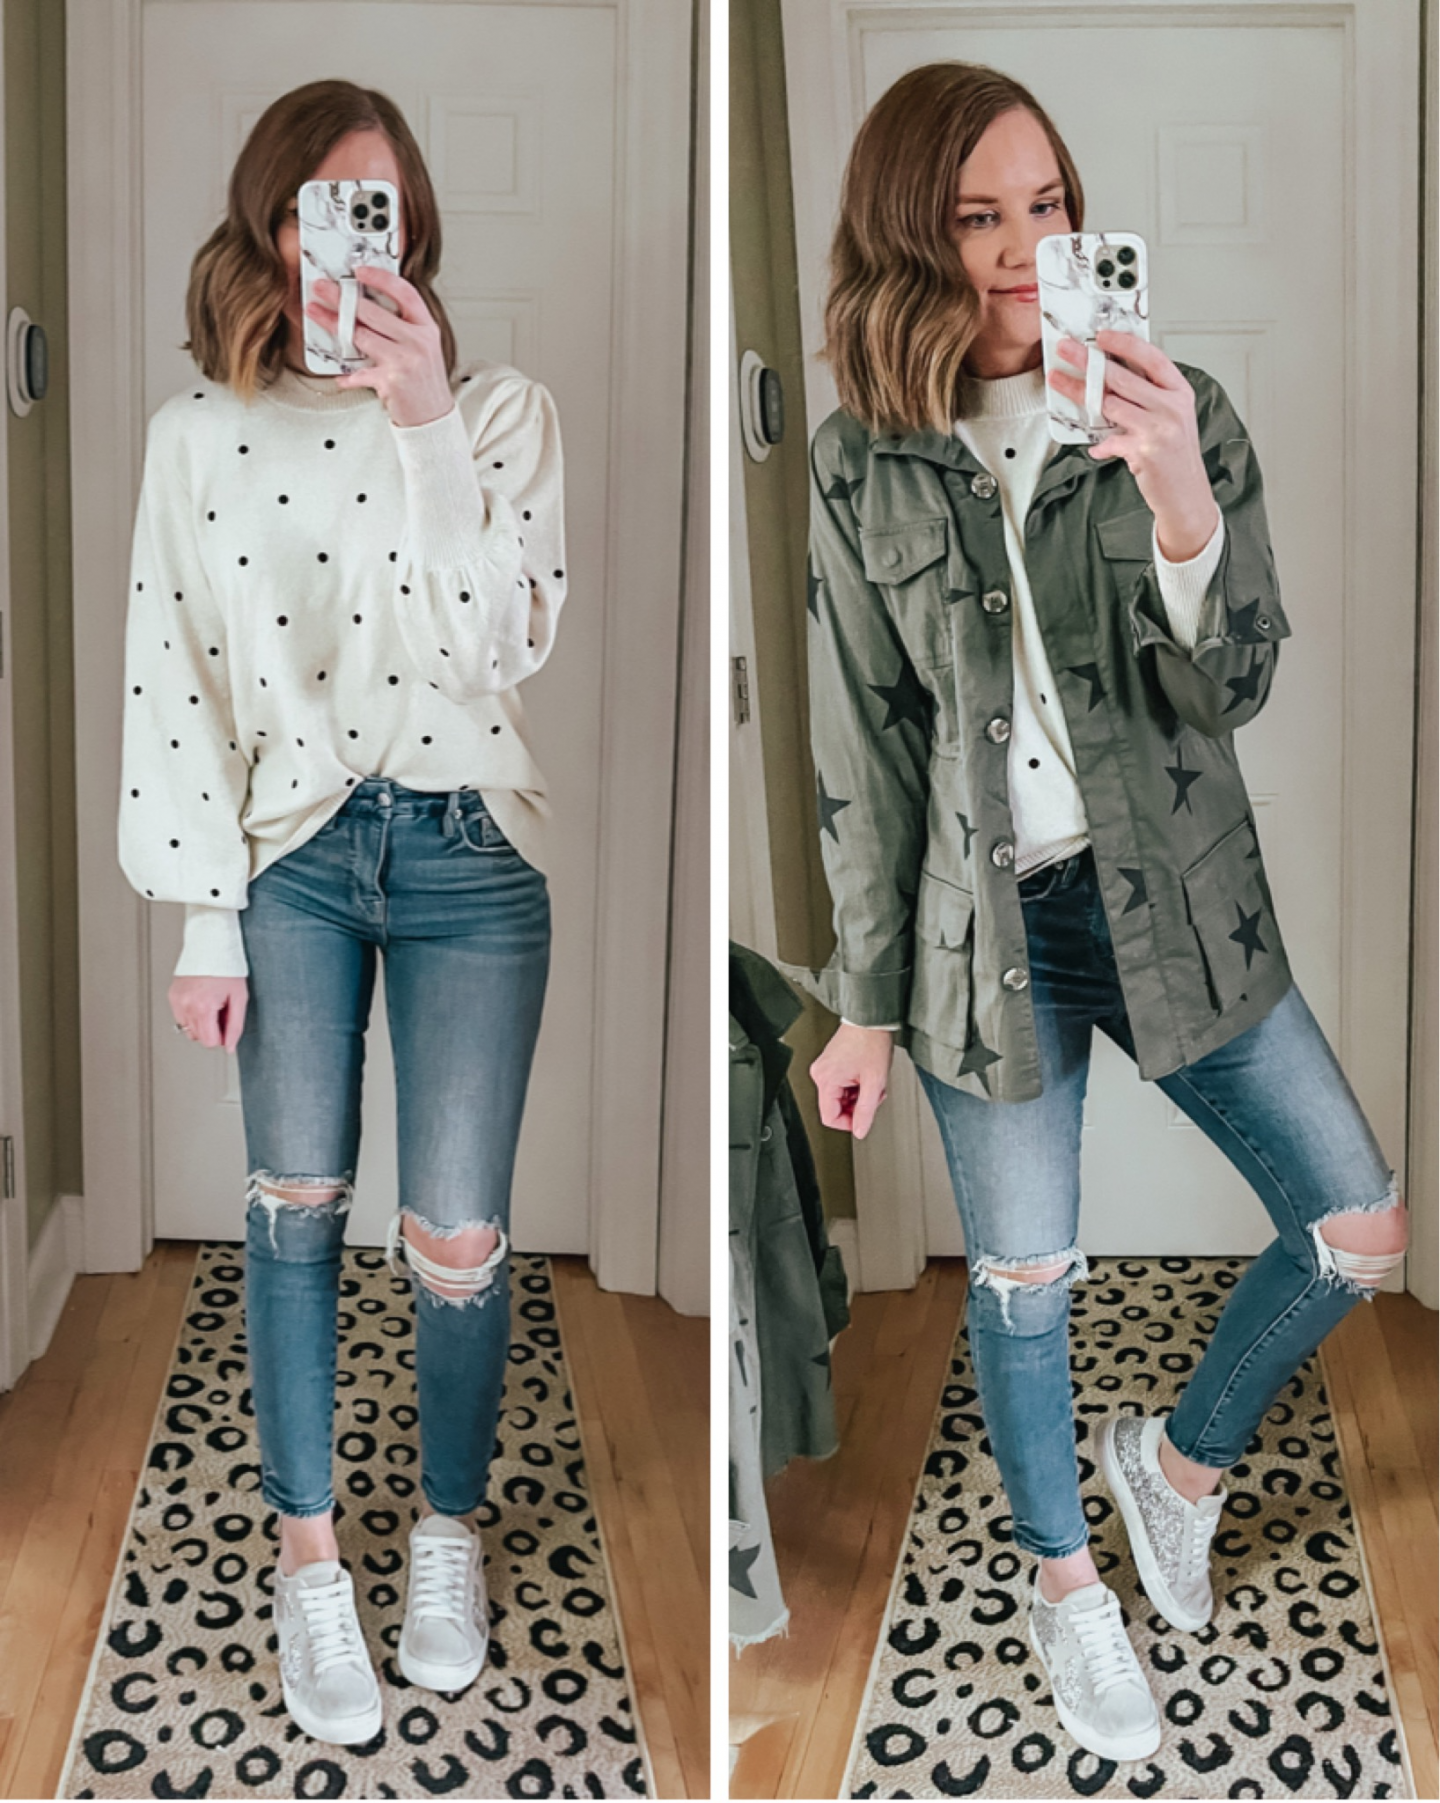 Target Must Haves February 2021, Target star utility jacket